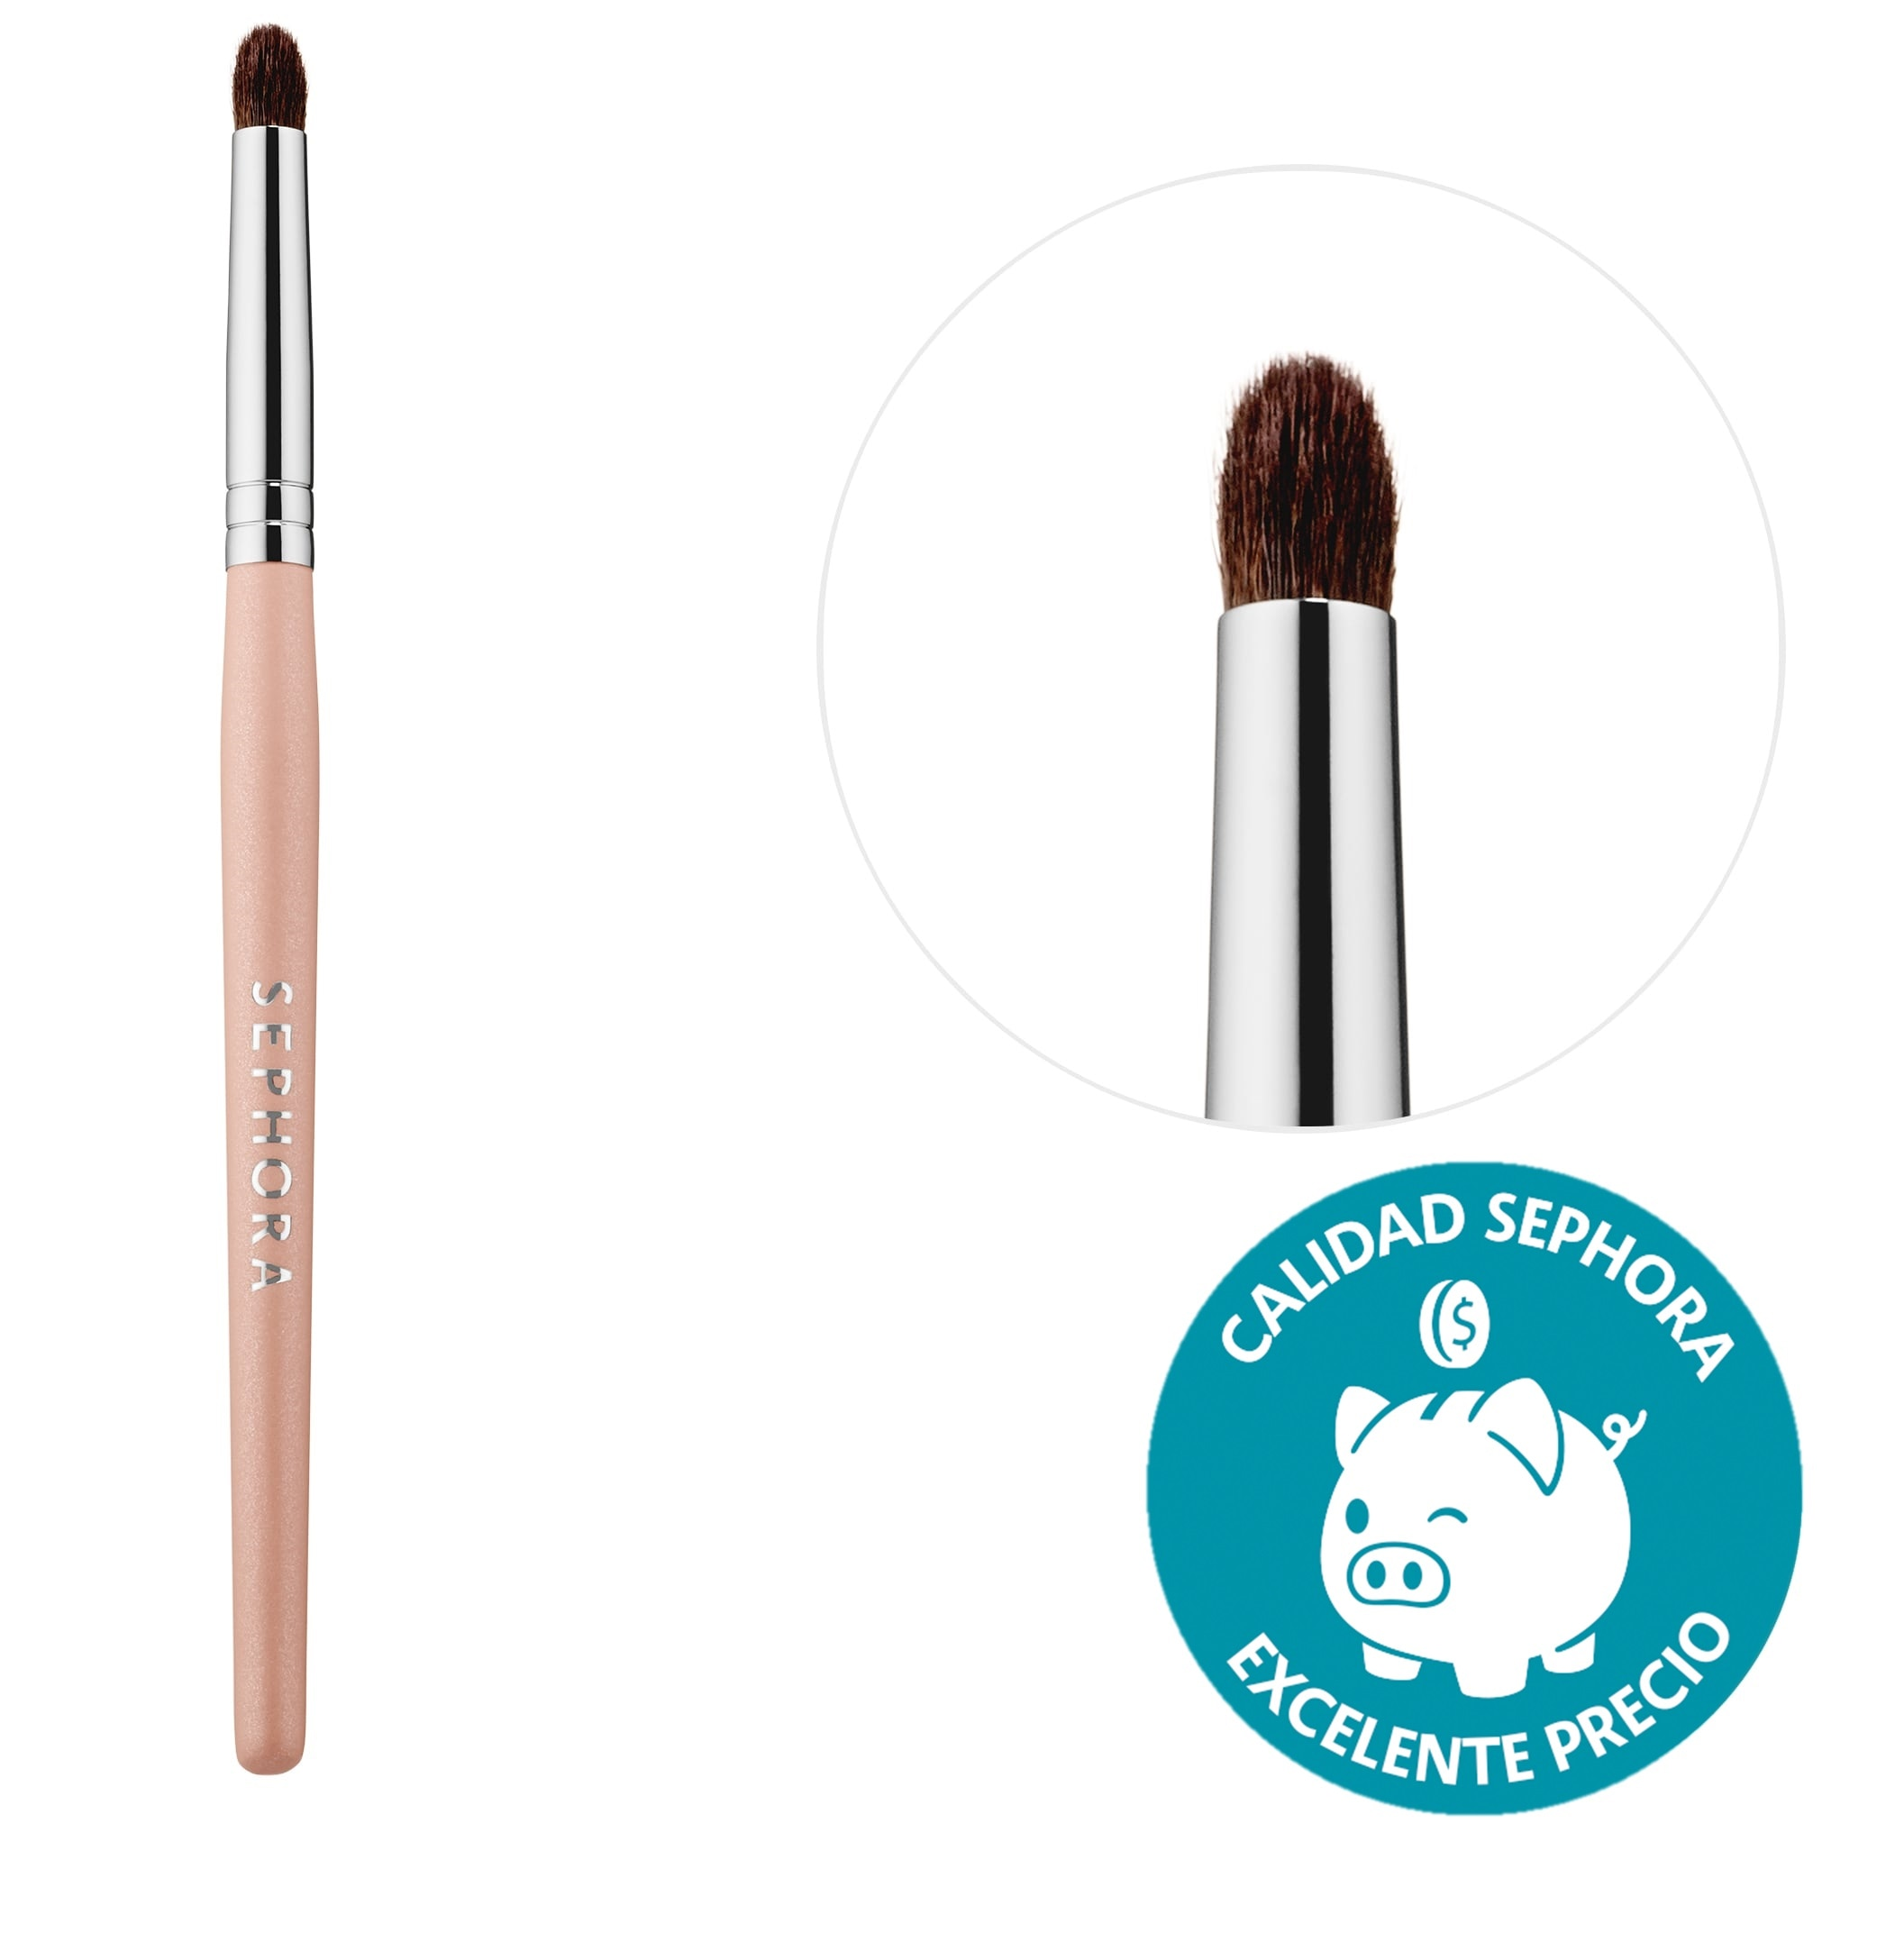 MAKEUP MATCH PRECISION CONCEALER BRUSH (BROCHA PARA CORRECTOR)